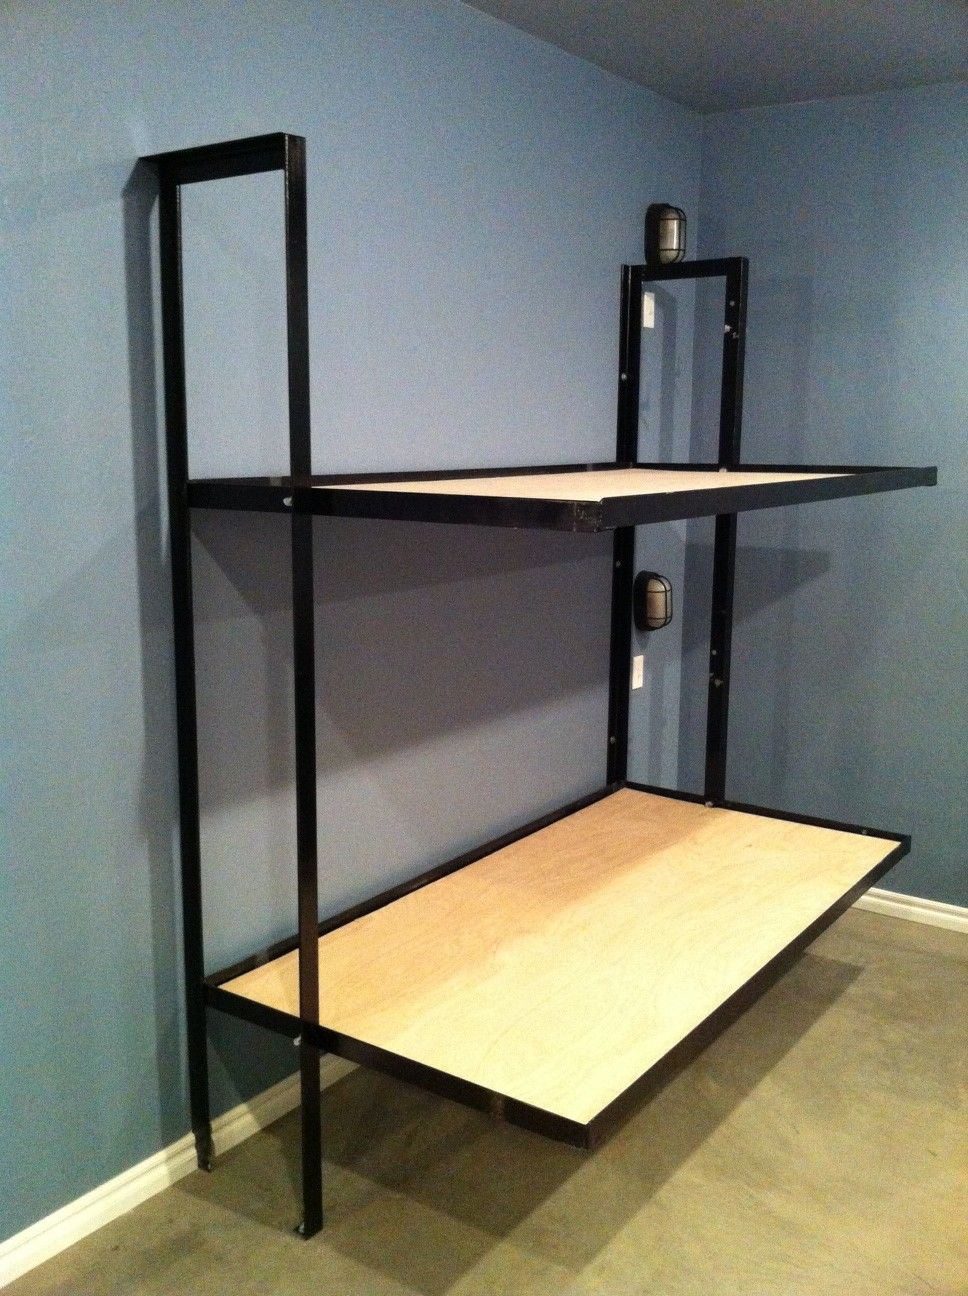 Folding Bunk Beds Without Mattress Diy Welding Bunk Bed Plans